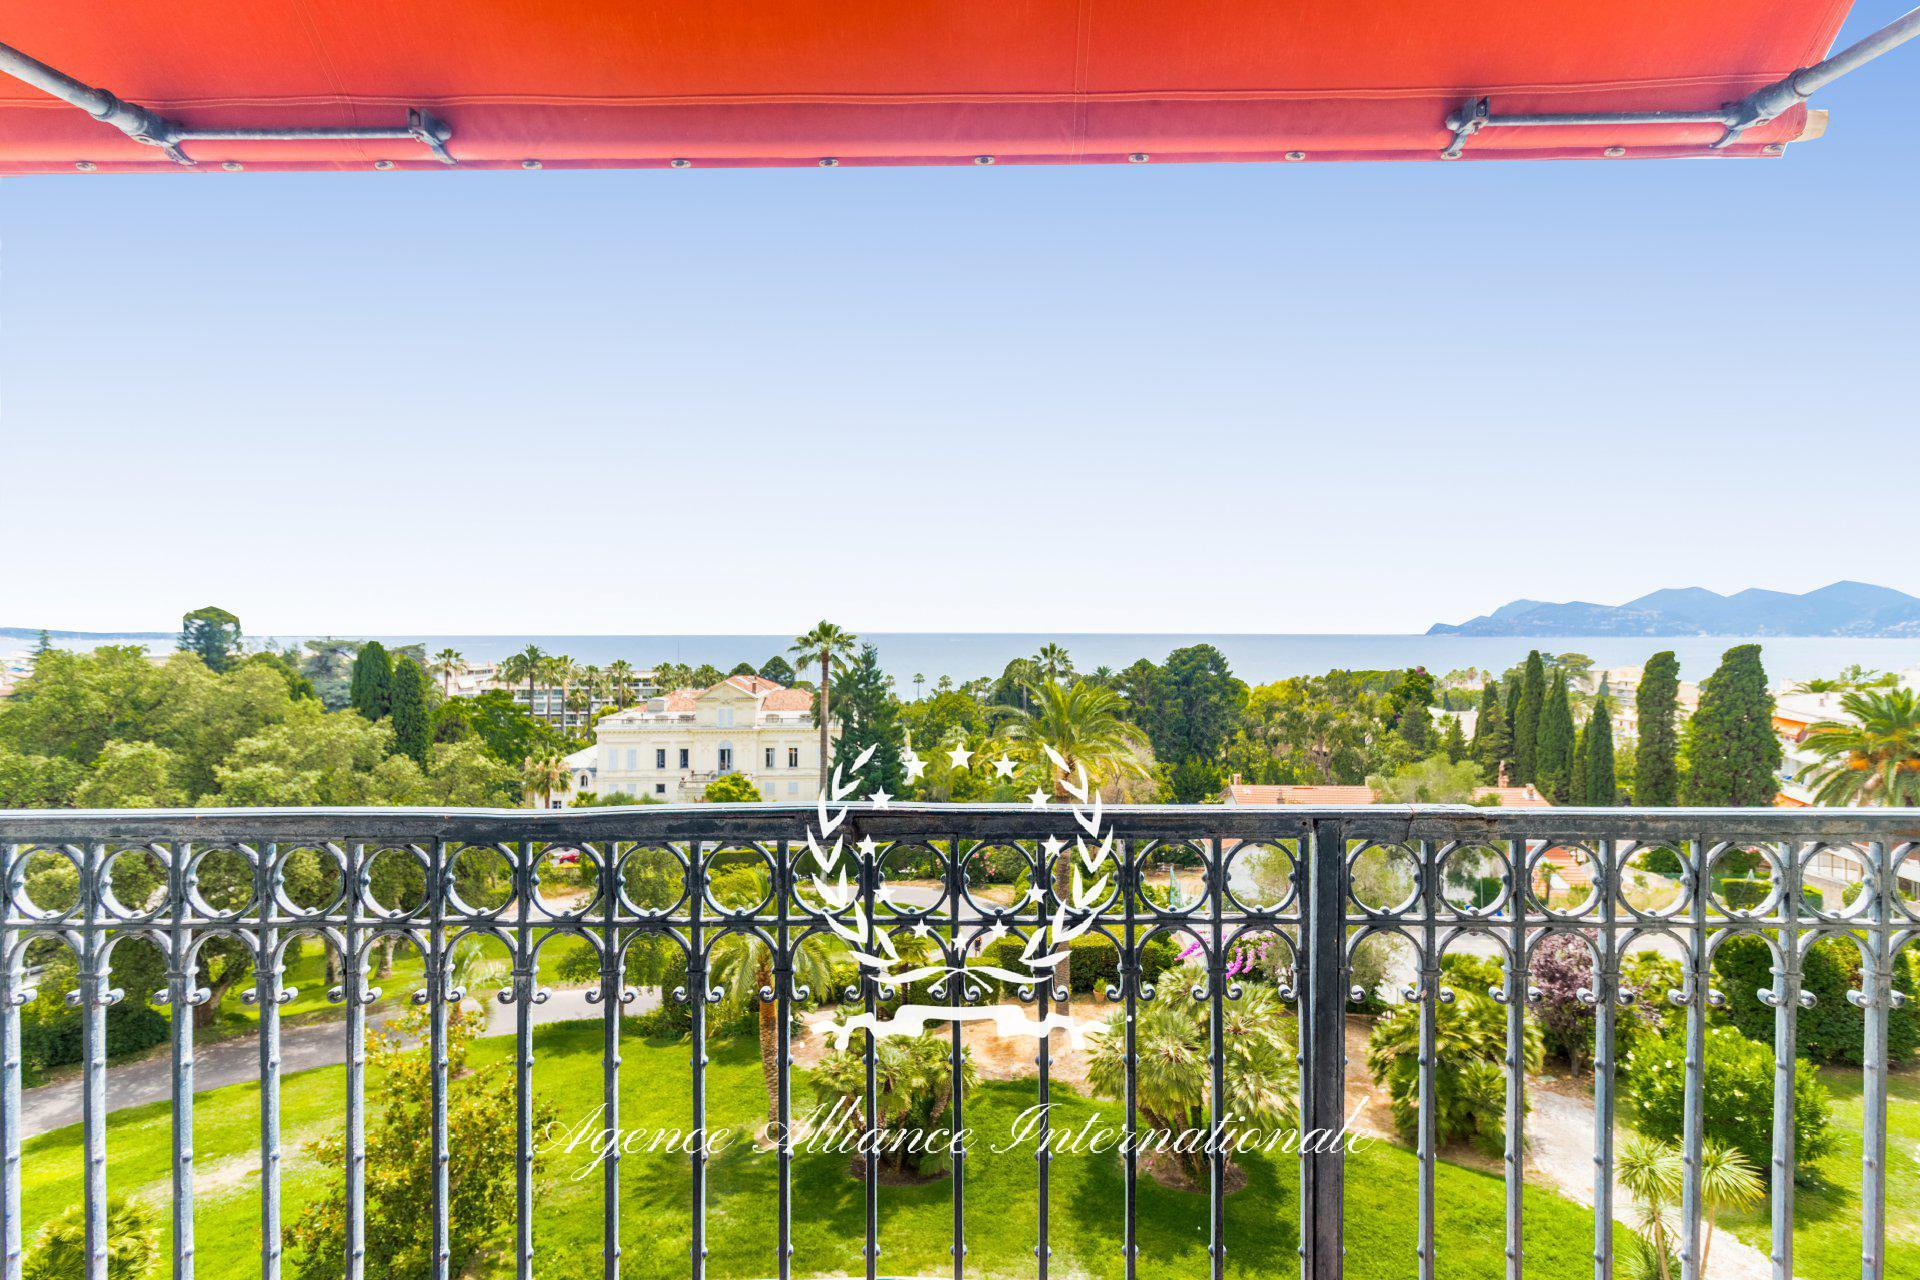 Apartment 146m2 Old Palace with Balcony Panoramic Sea View in Cannes Croix des Gardes